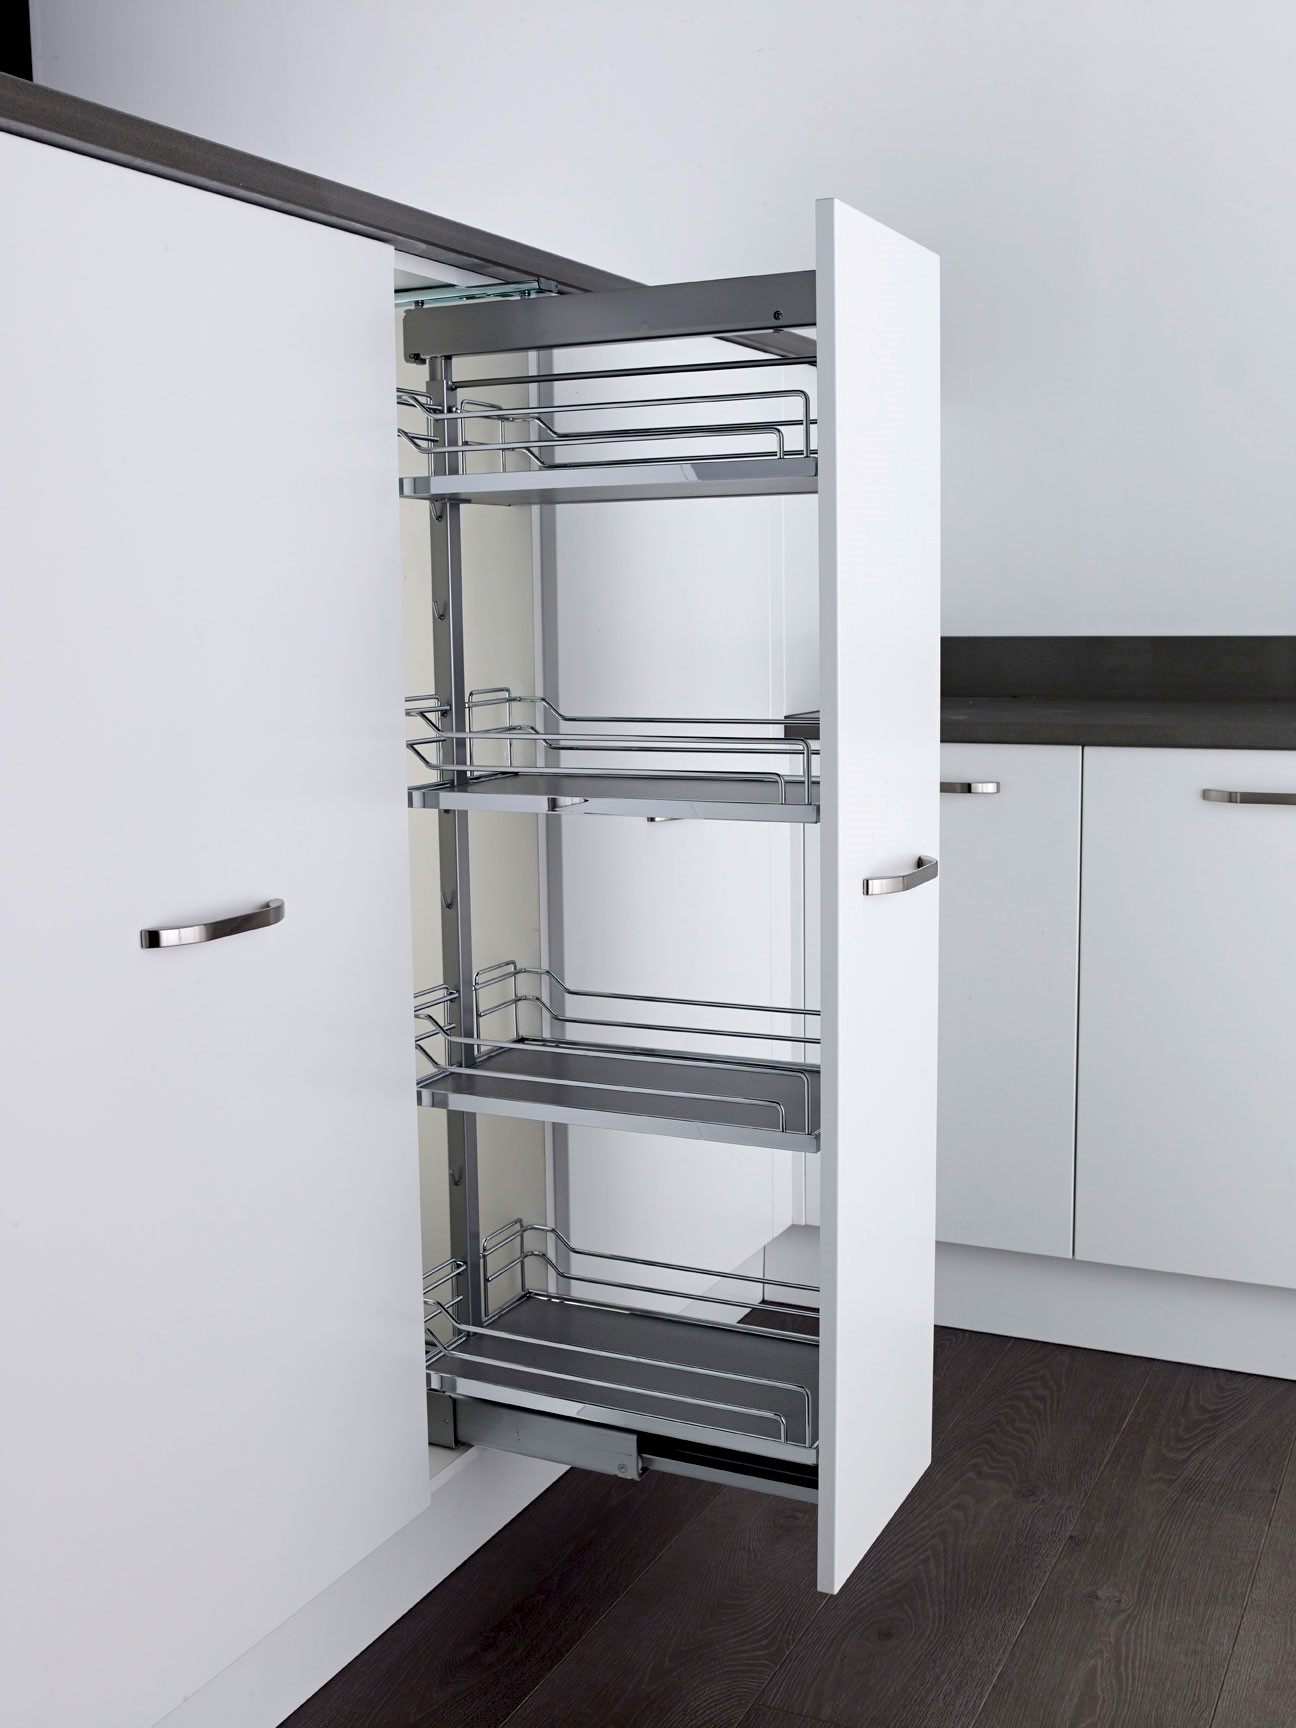 Chrome Kitchen Cabinets Larder Pull Out Kesseb 246 Hmer Arena Larder Pull Out Full